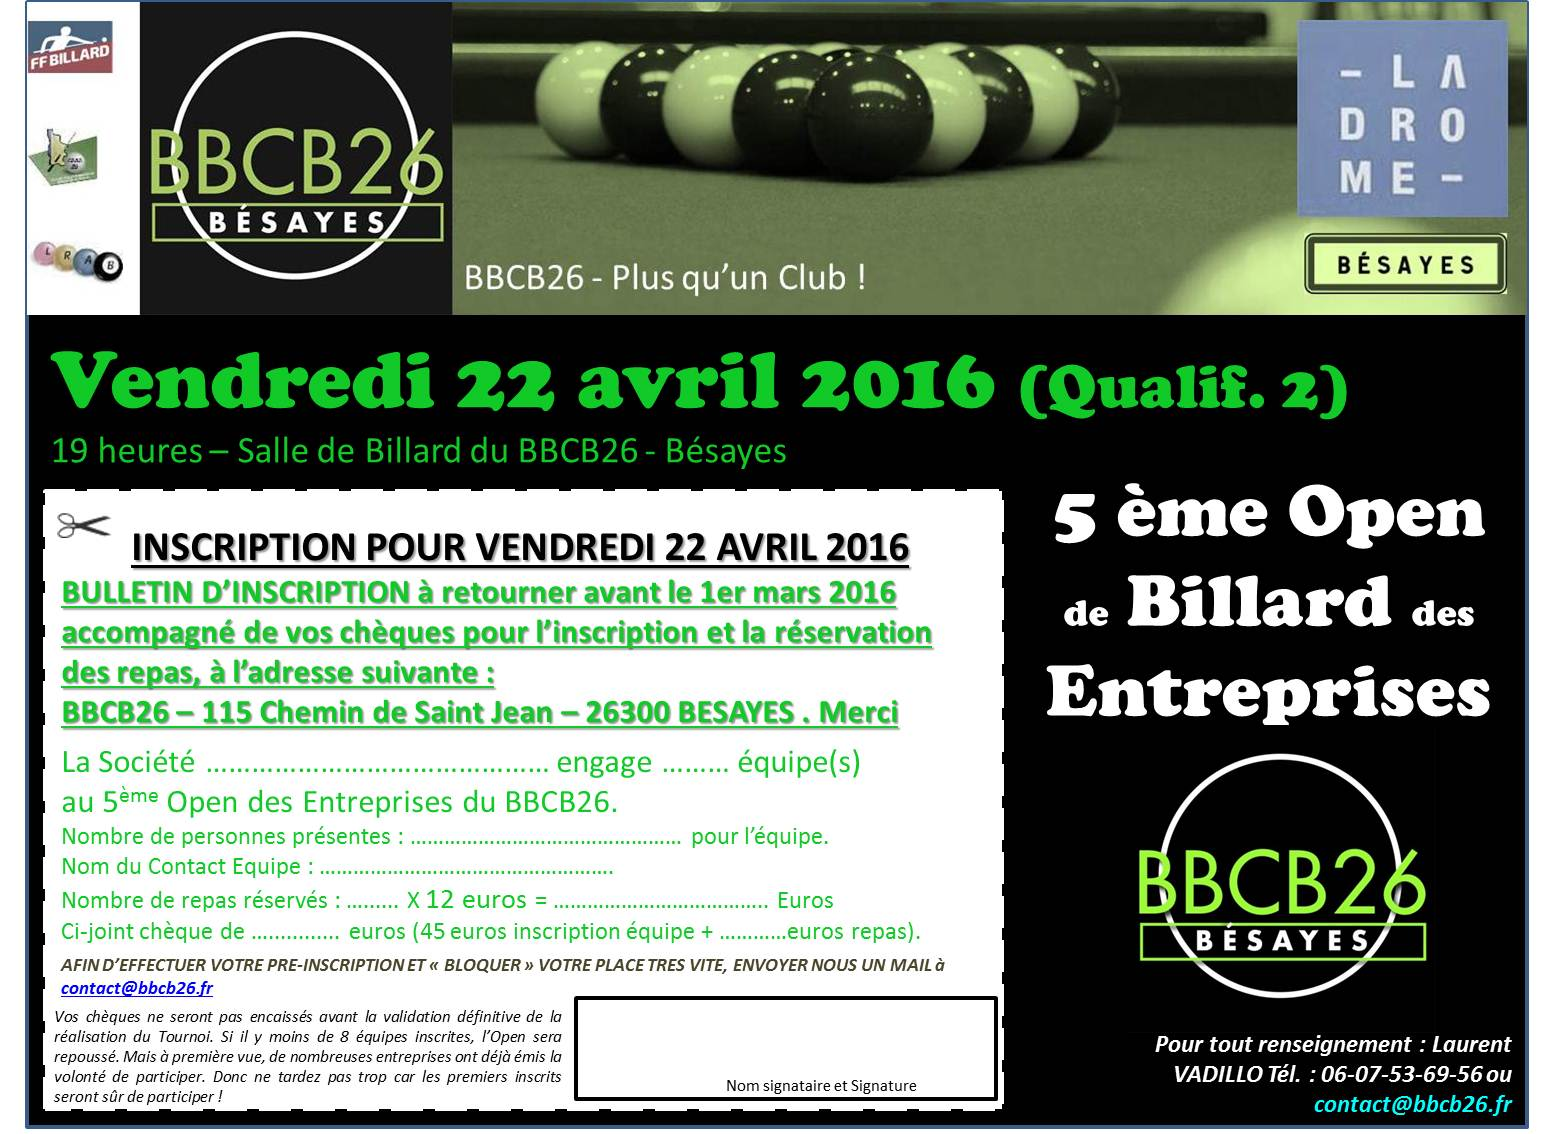 bulletin inscritpion 22-04-16 - Open de Billard des Entretprises BBCB26.jpg